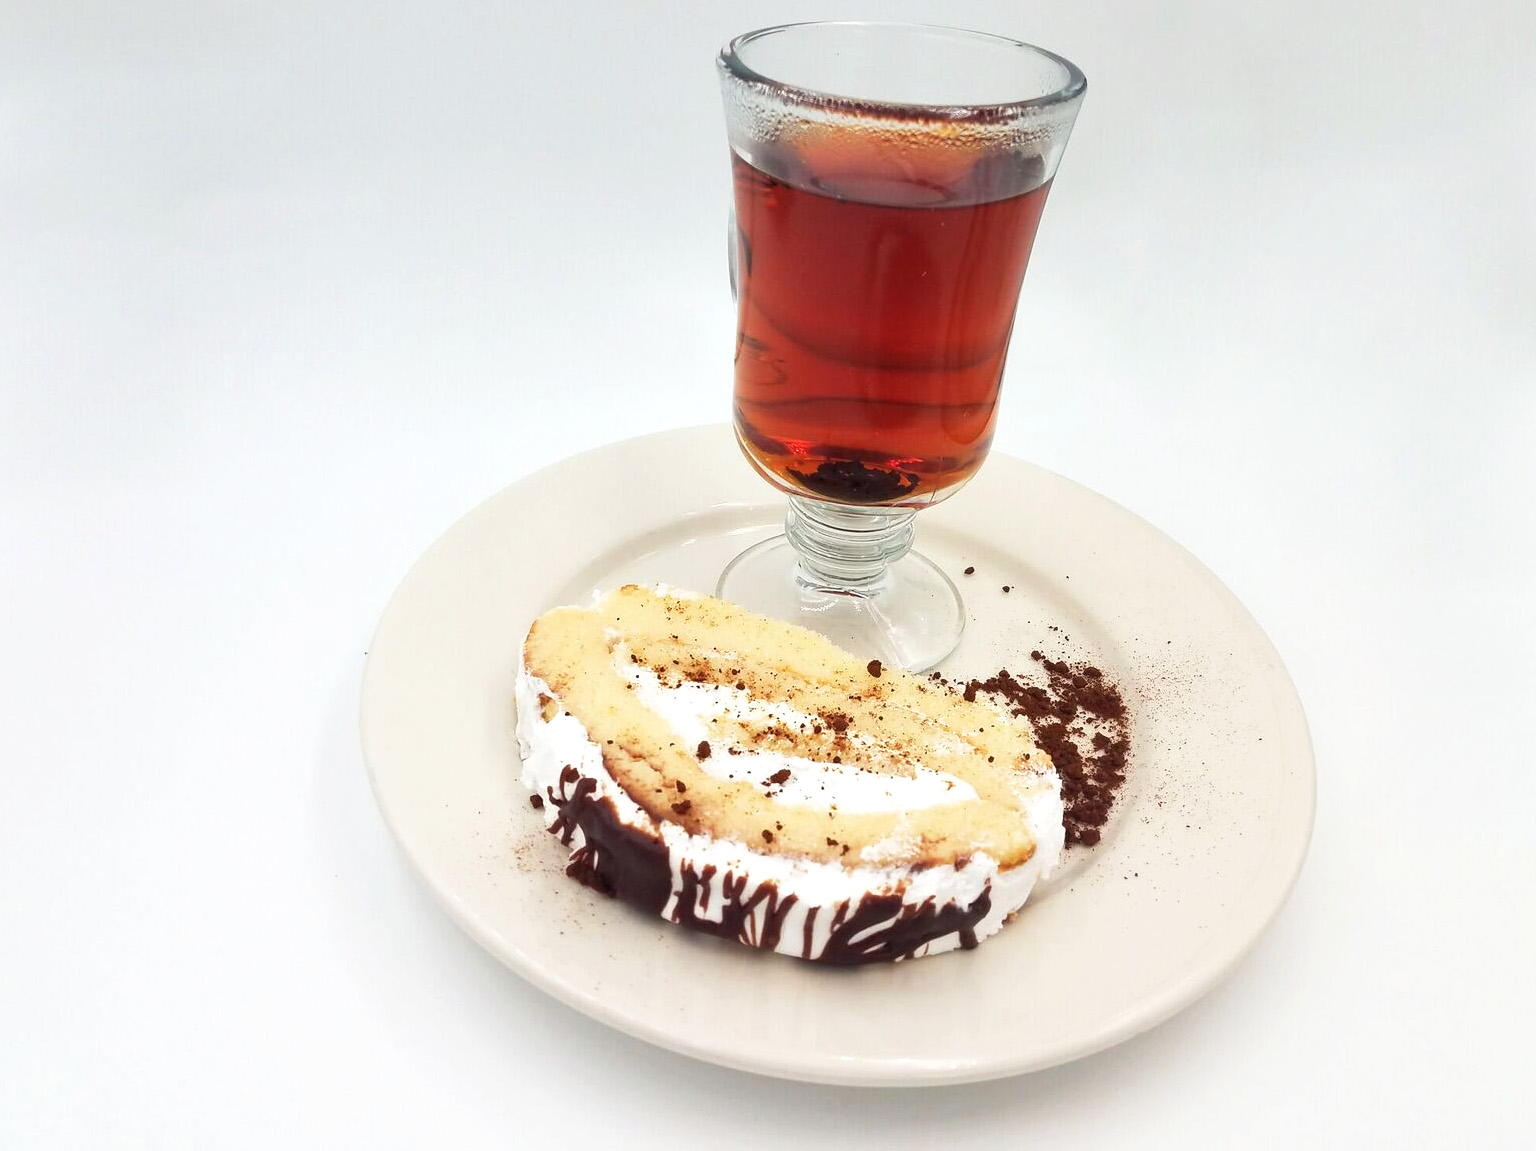 Rolled Cake and Tea